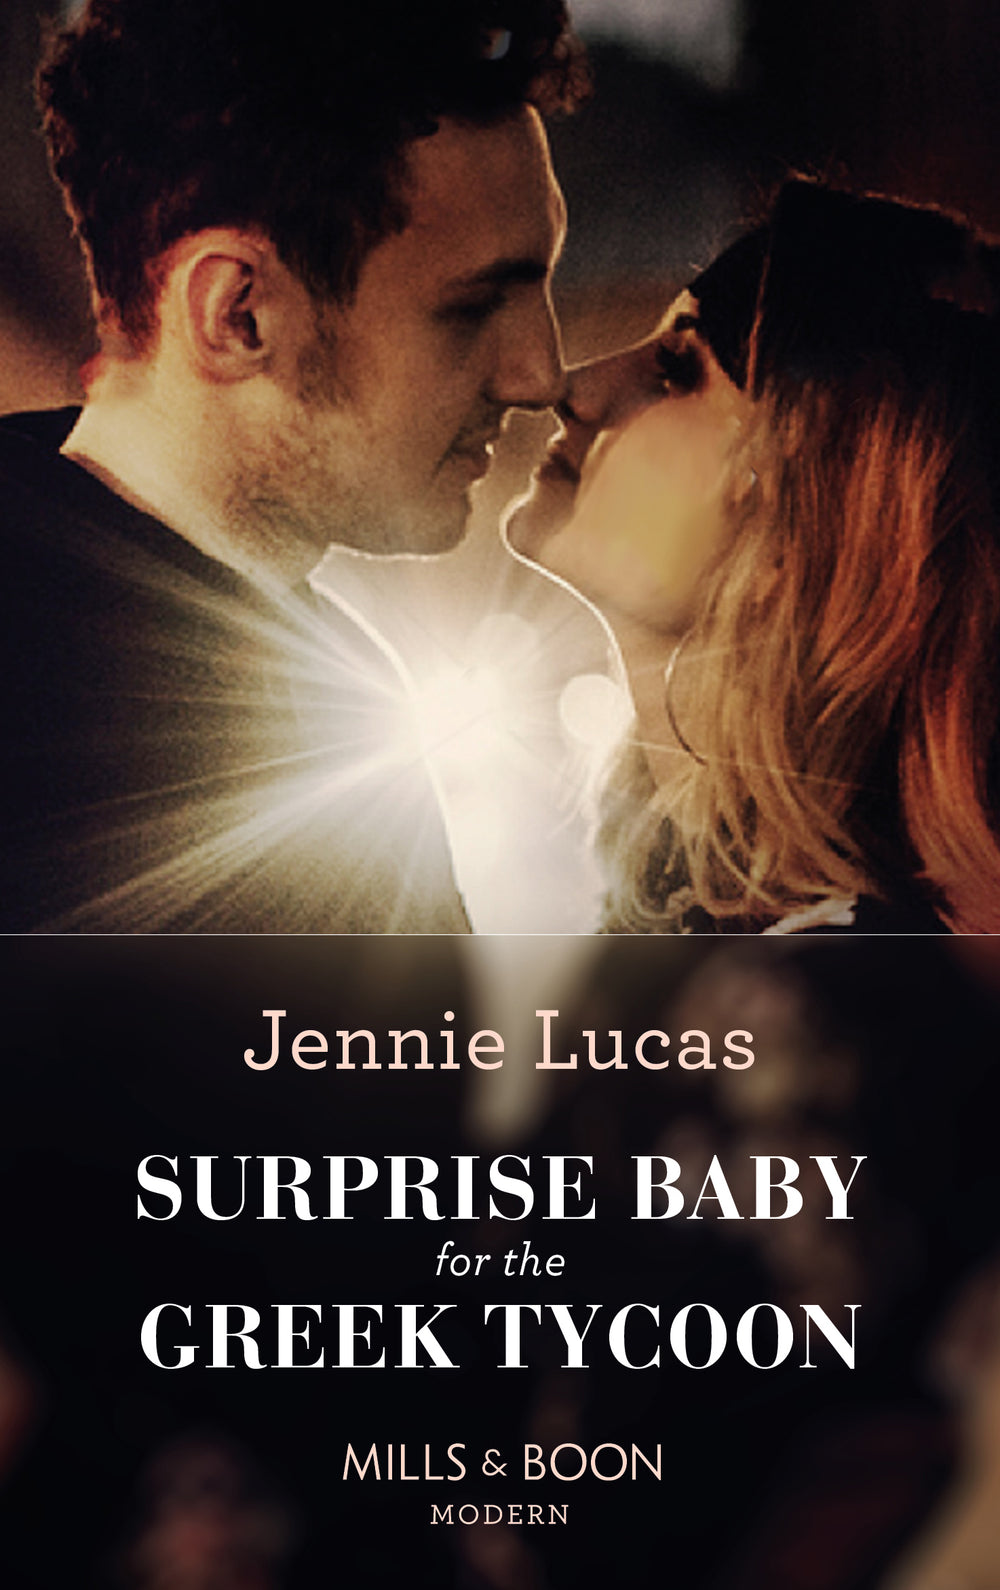 Surprise Baby for the Greek Tycoon - Chapter 6